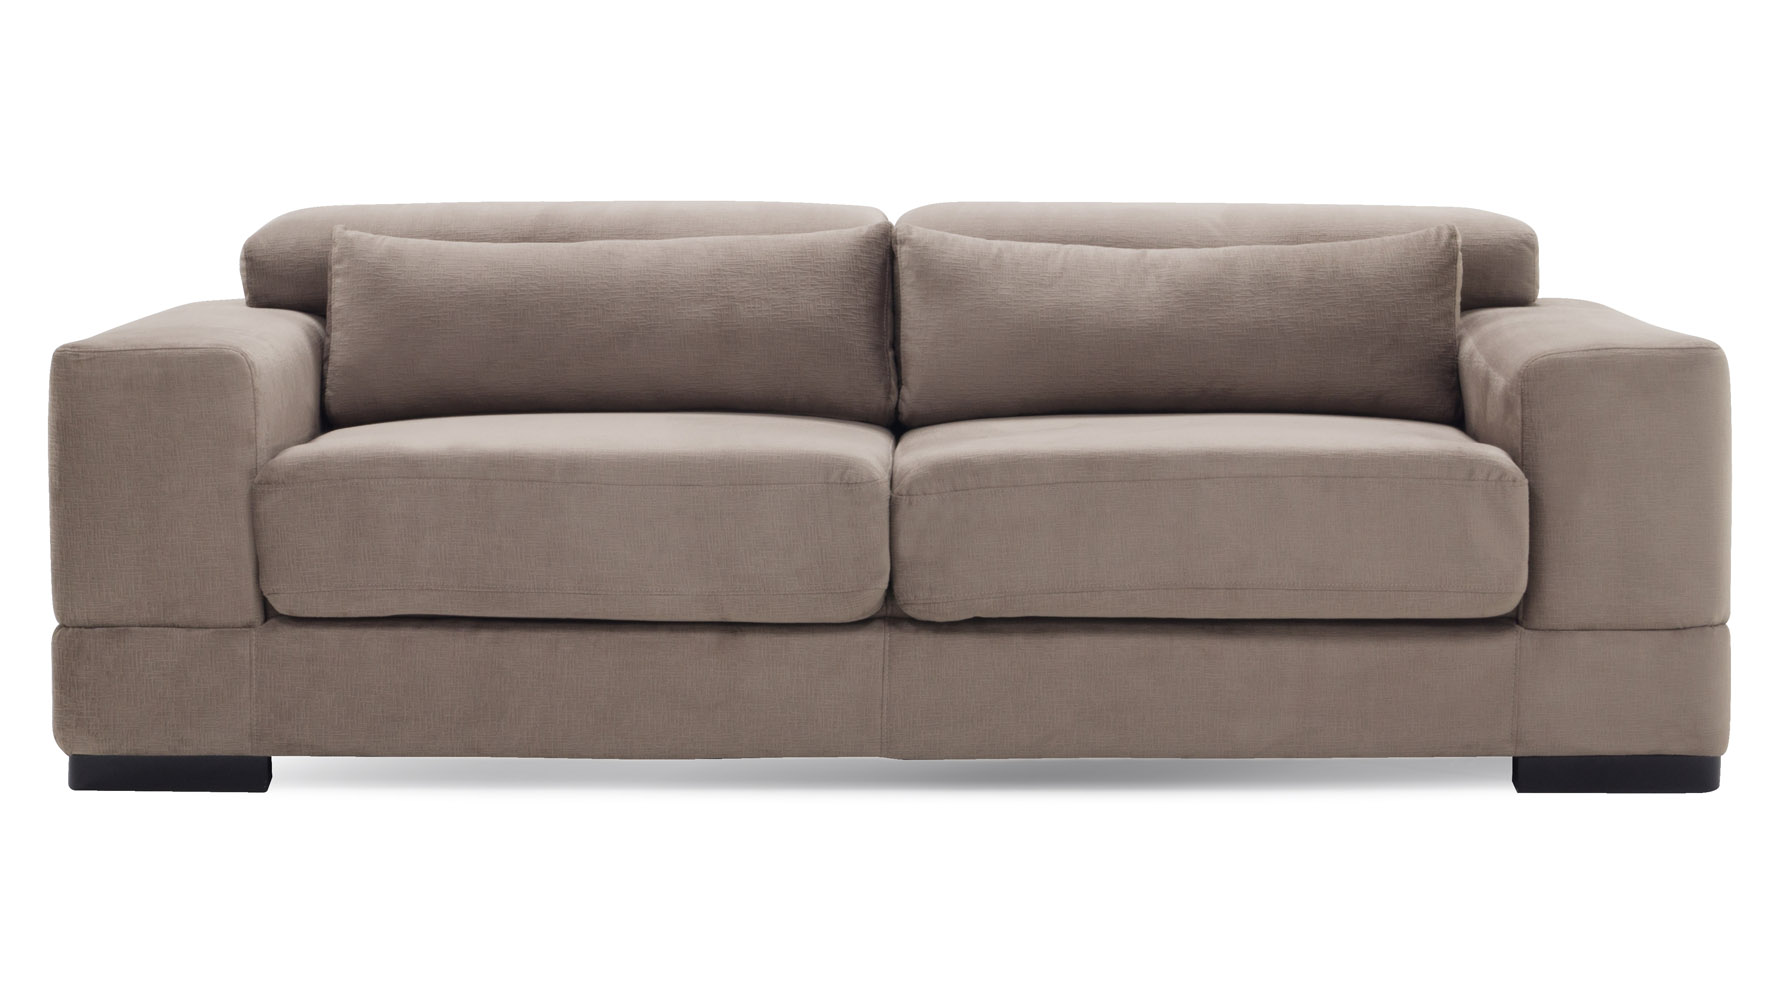 Pull Out Sofa Sleeper Click Clack Sofa Bed Sofa Chair Bed Modern Leather Sofa Bed Ikea Pull